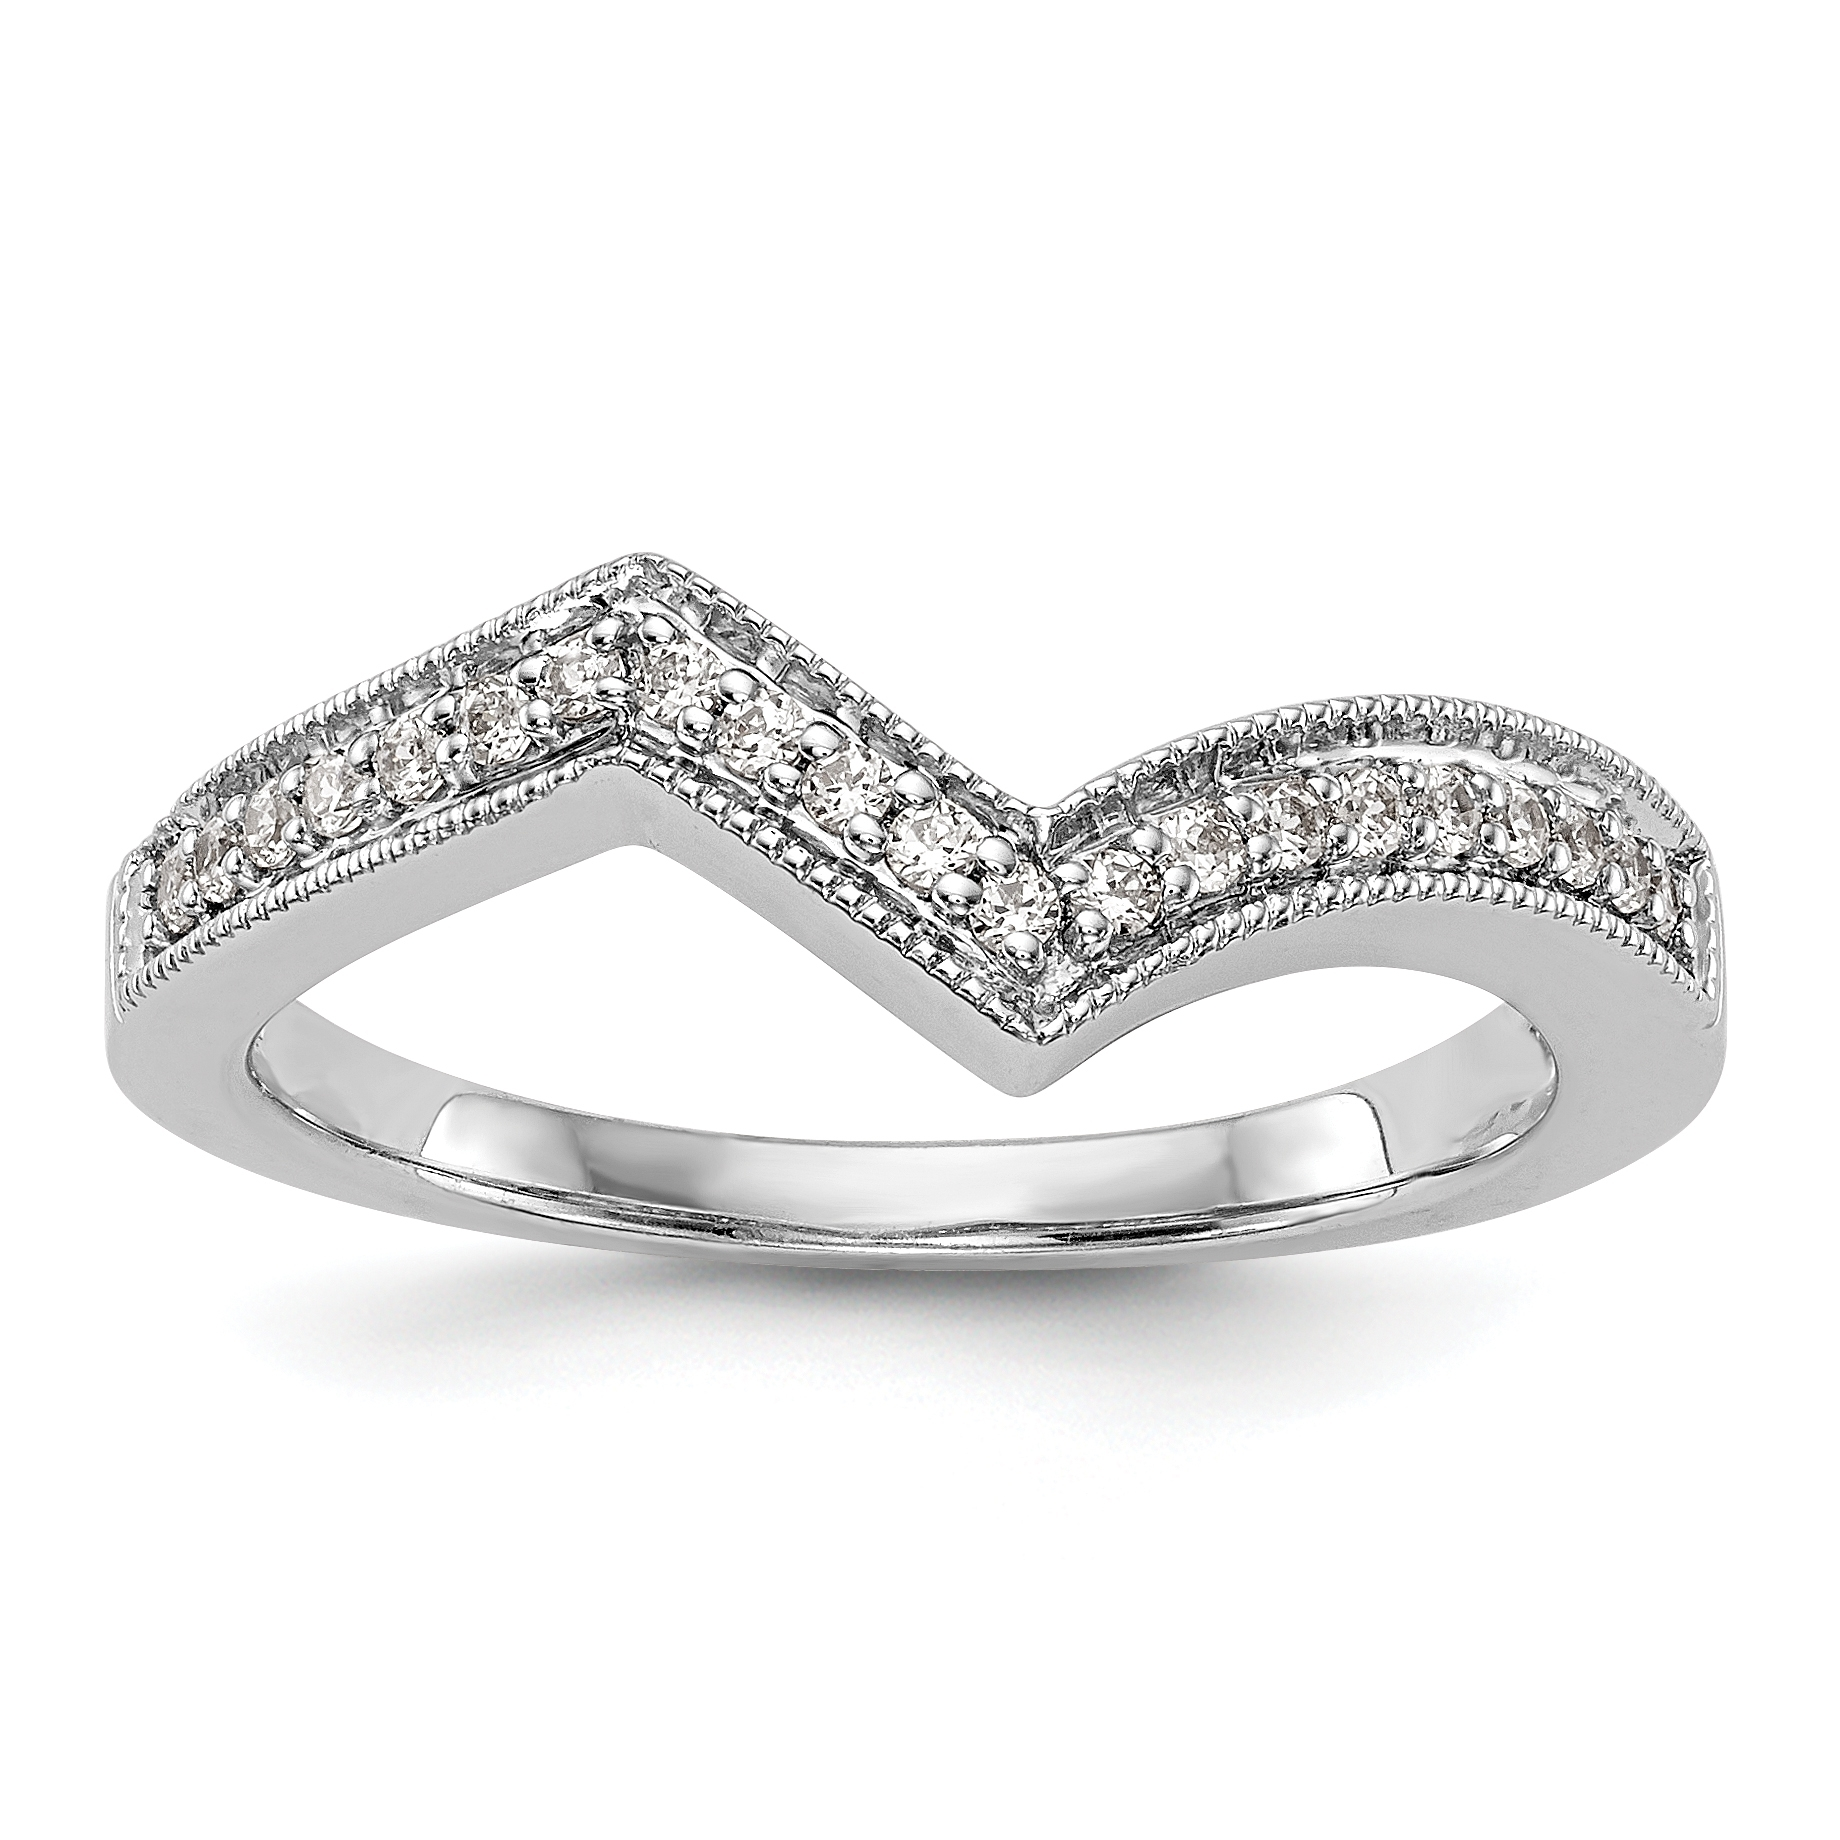 14K White Gold Contour Wedding Band Mounting Intended For Recent Diamond Contour Wedding Bands In 14K White Gold (Gallery 15 of 15)